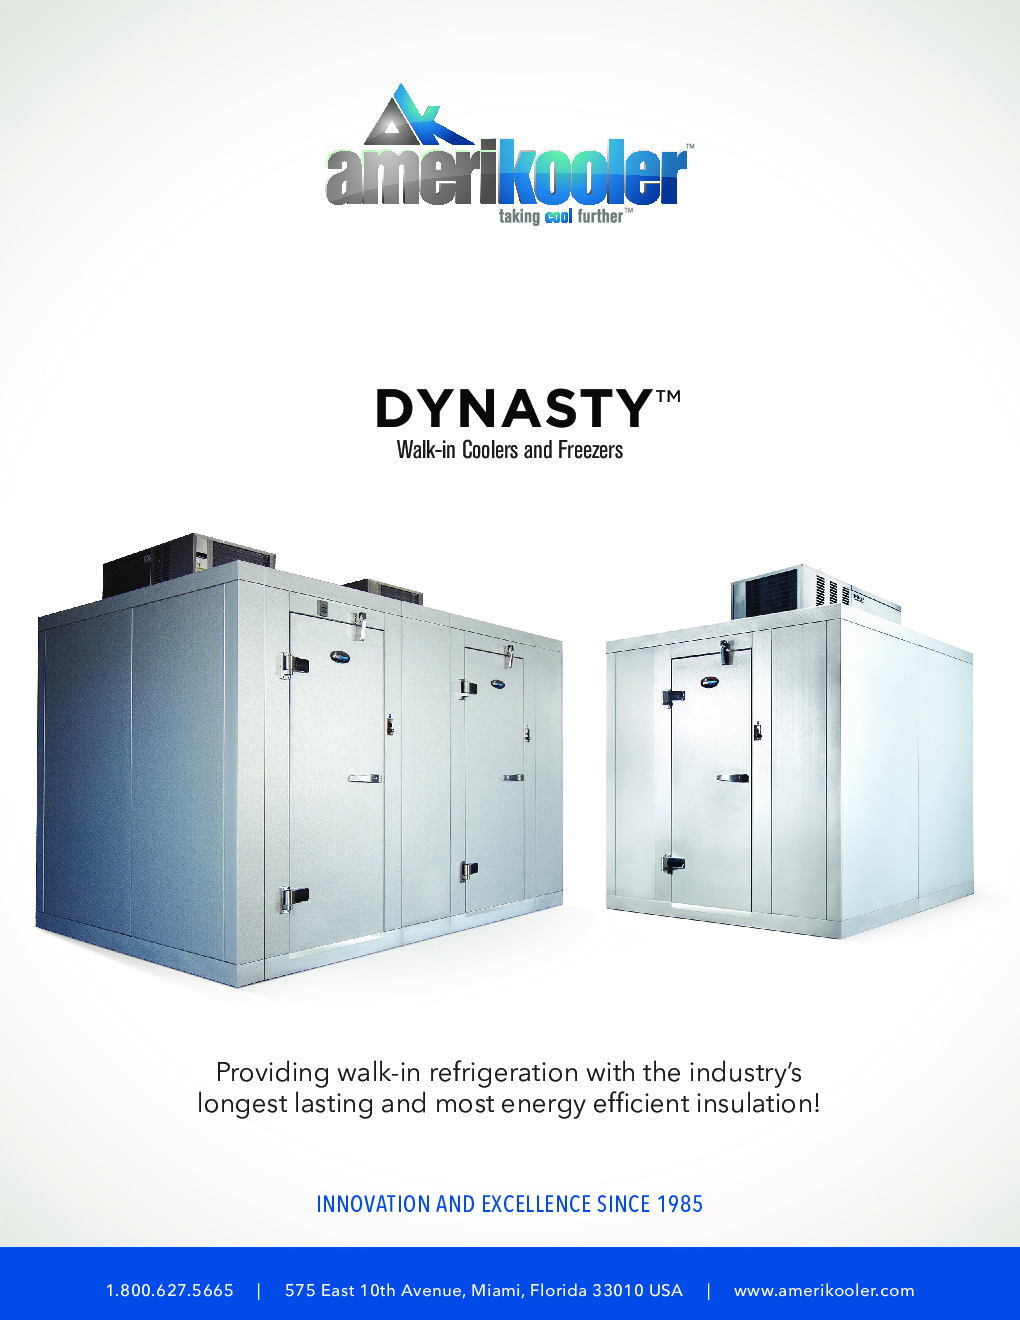 AmeriKooler DW091077N-4/6-RM 9' X 10' Walk-In Cooler, 6' L Cooler without Floor and 4' L Freezer, Remote